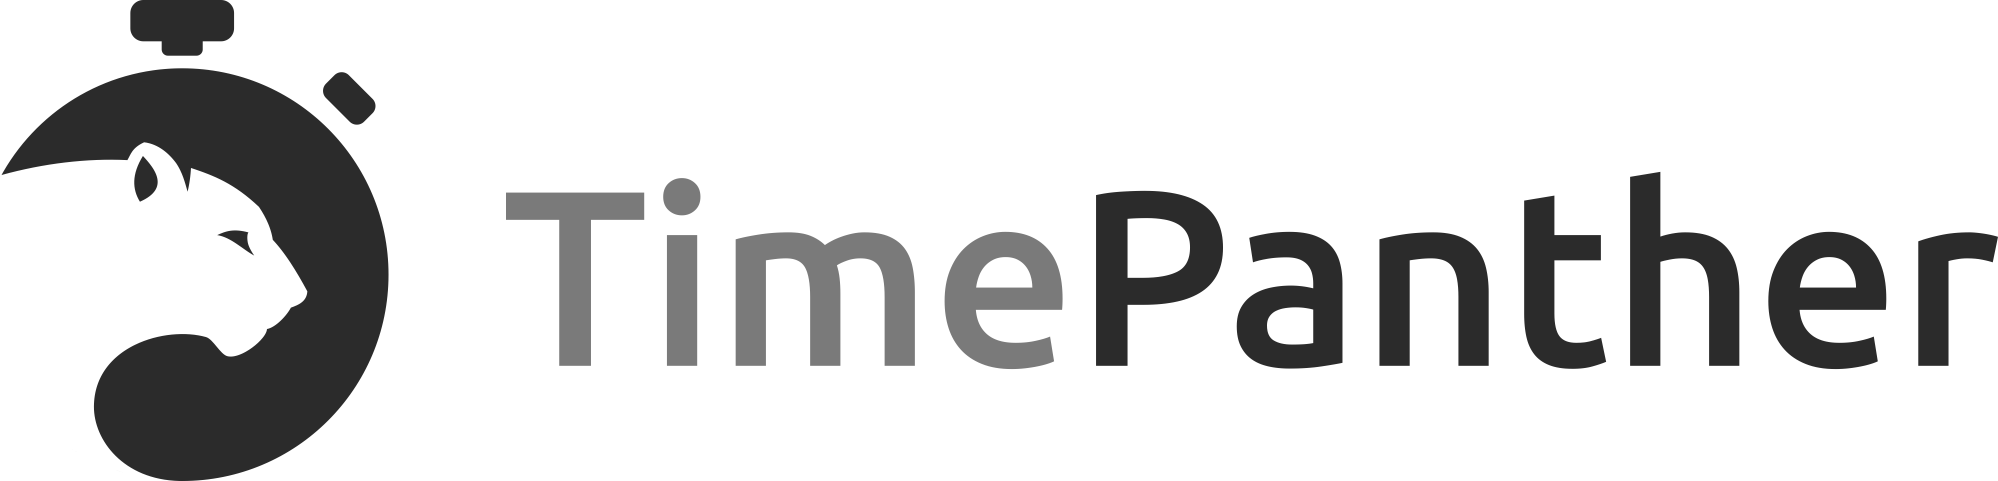 TimePanther startup company - Time tracking application for freelancers